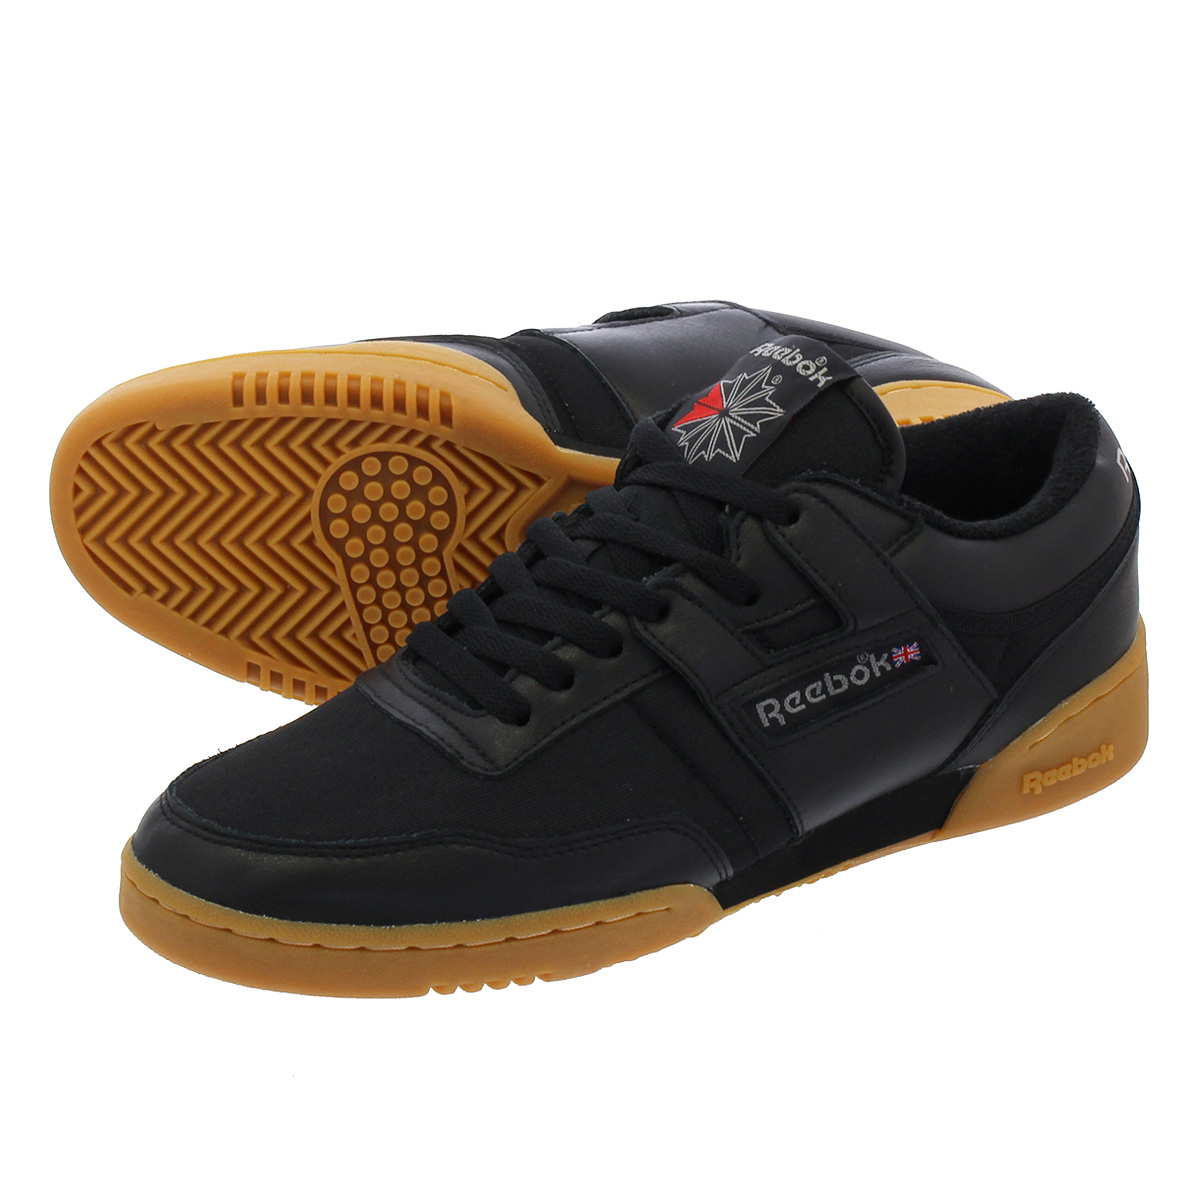 5f37bdceb968 Reebok WORKOUT 85 ARCHIVE Reebok practice game 85 archive  BLACK RED CARBON GUM cn3661